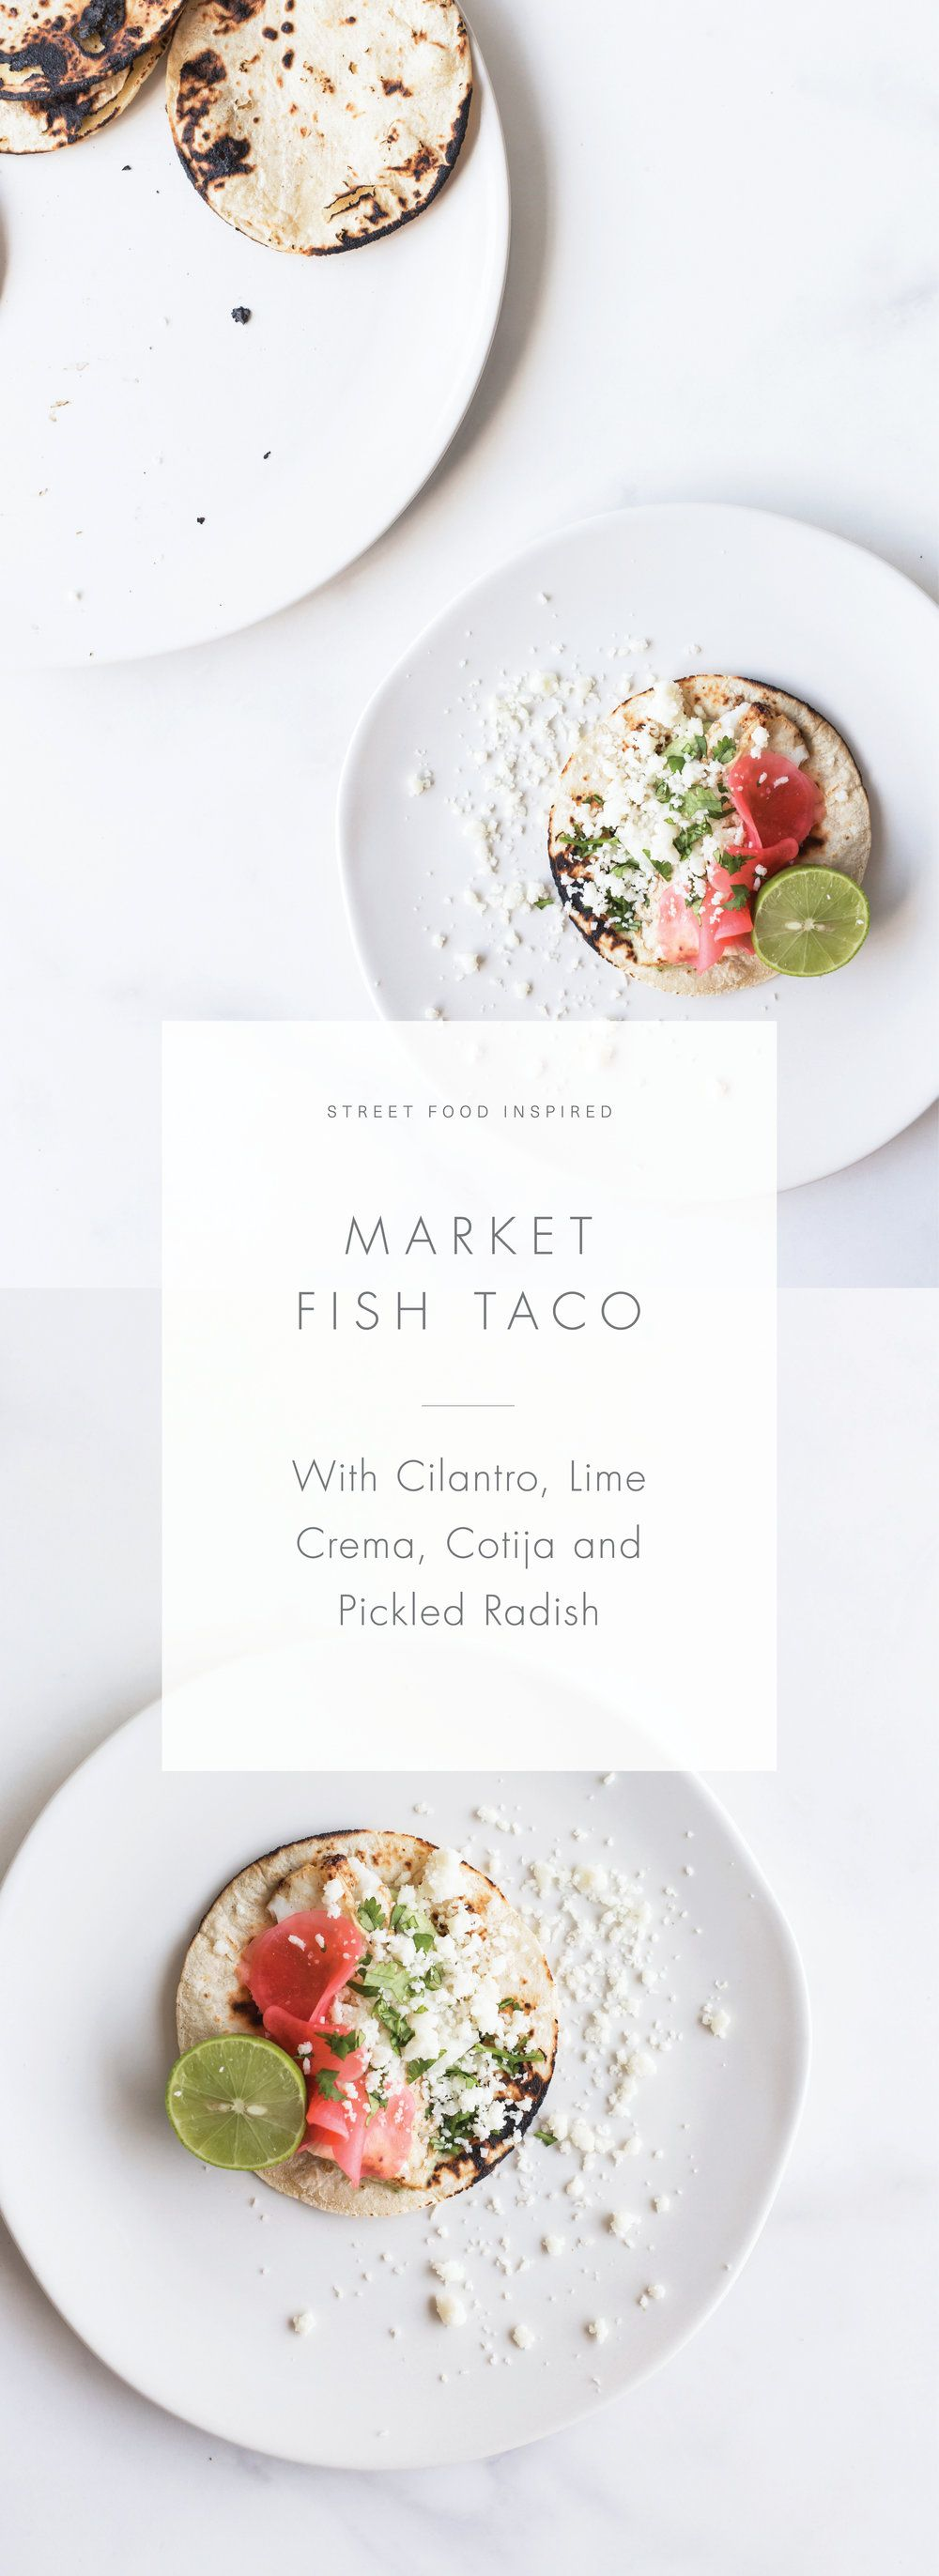 Market Fish Taco  with cilantro - lime crema, cotija + pickled radish   simple, healthy weeknight meals  adapted from our cookbook Sunday Suppers: Recipes + Gatherings recipe and photo by sunday suppers/karen mordechai